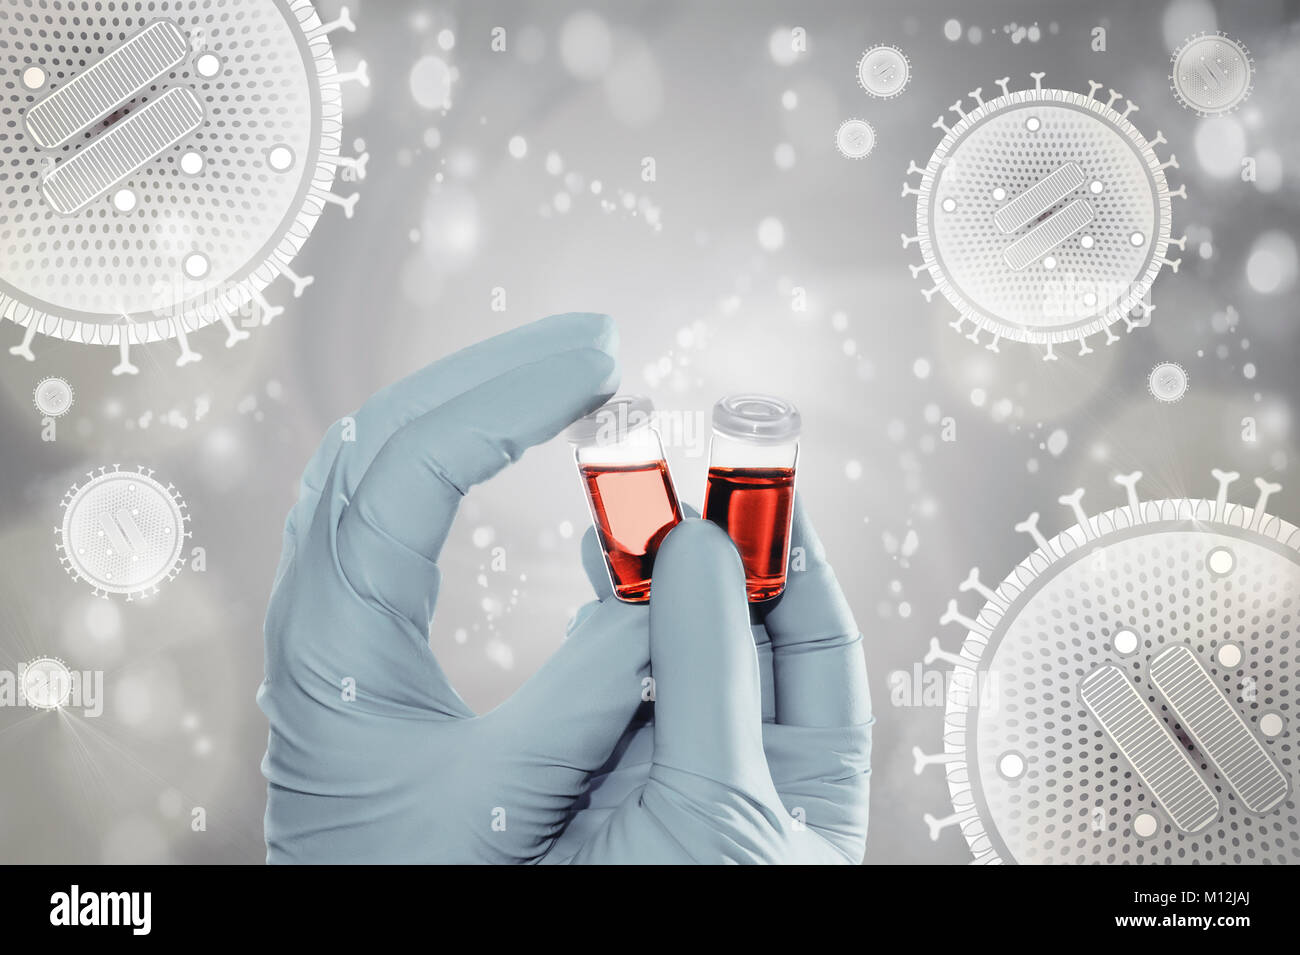 Gloved hands hold liquid samples on background with flu virus particles, text space - Stock Image